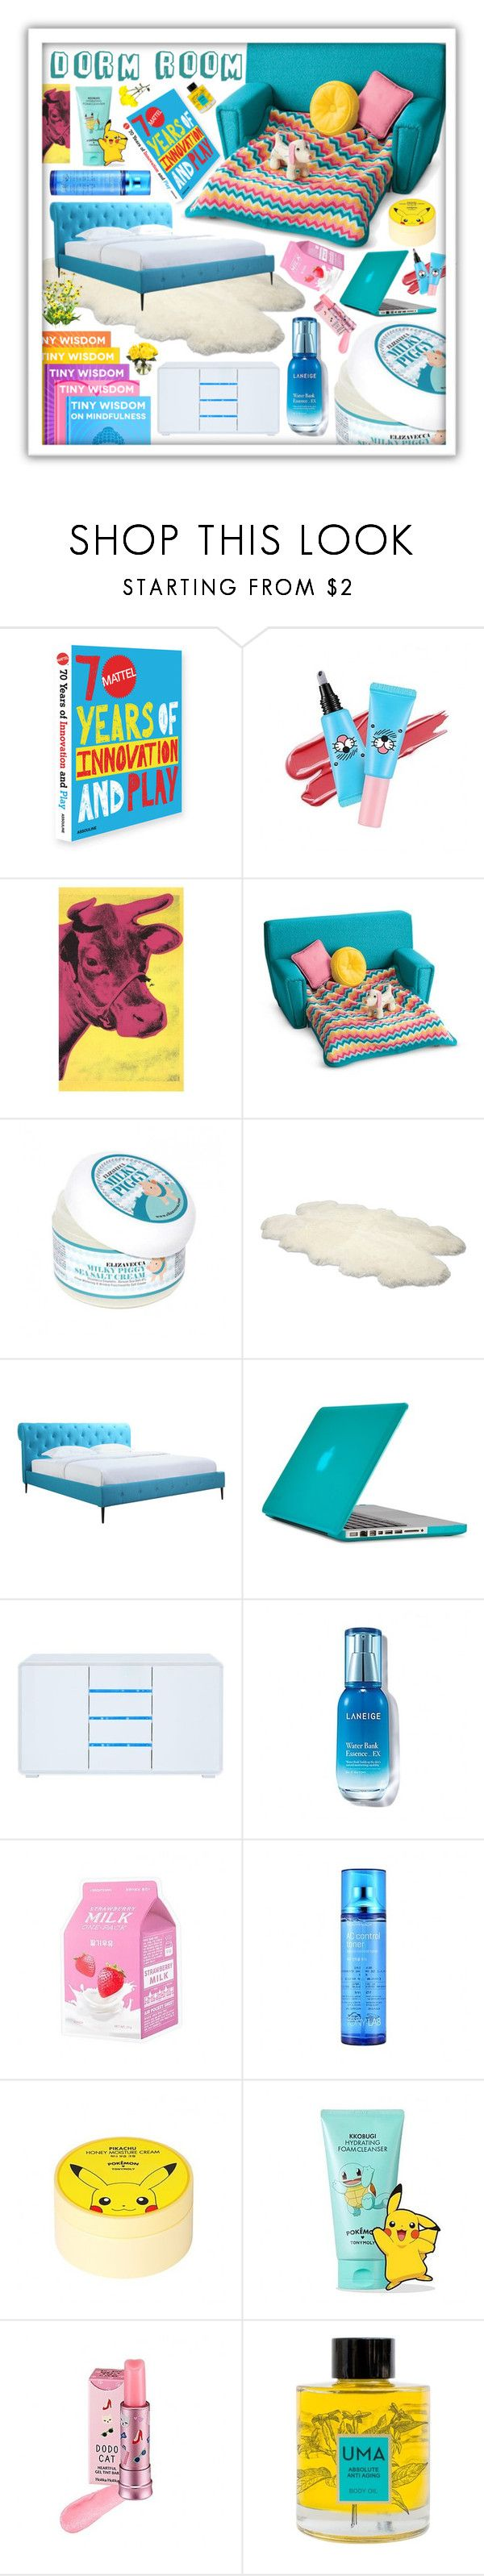 """""""Teal Dorm room!"""" by beanpod ❤ liked on Polyvore featuring interior, interiors, interior design, home, home decor, interior decorating, Assouline Publishing, Andy Warhol, SkinCare and UGG Australia"""